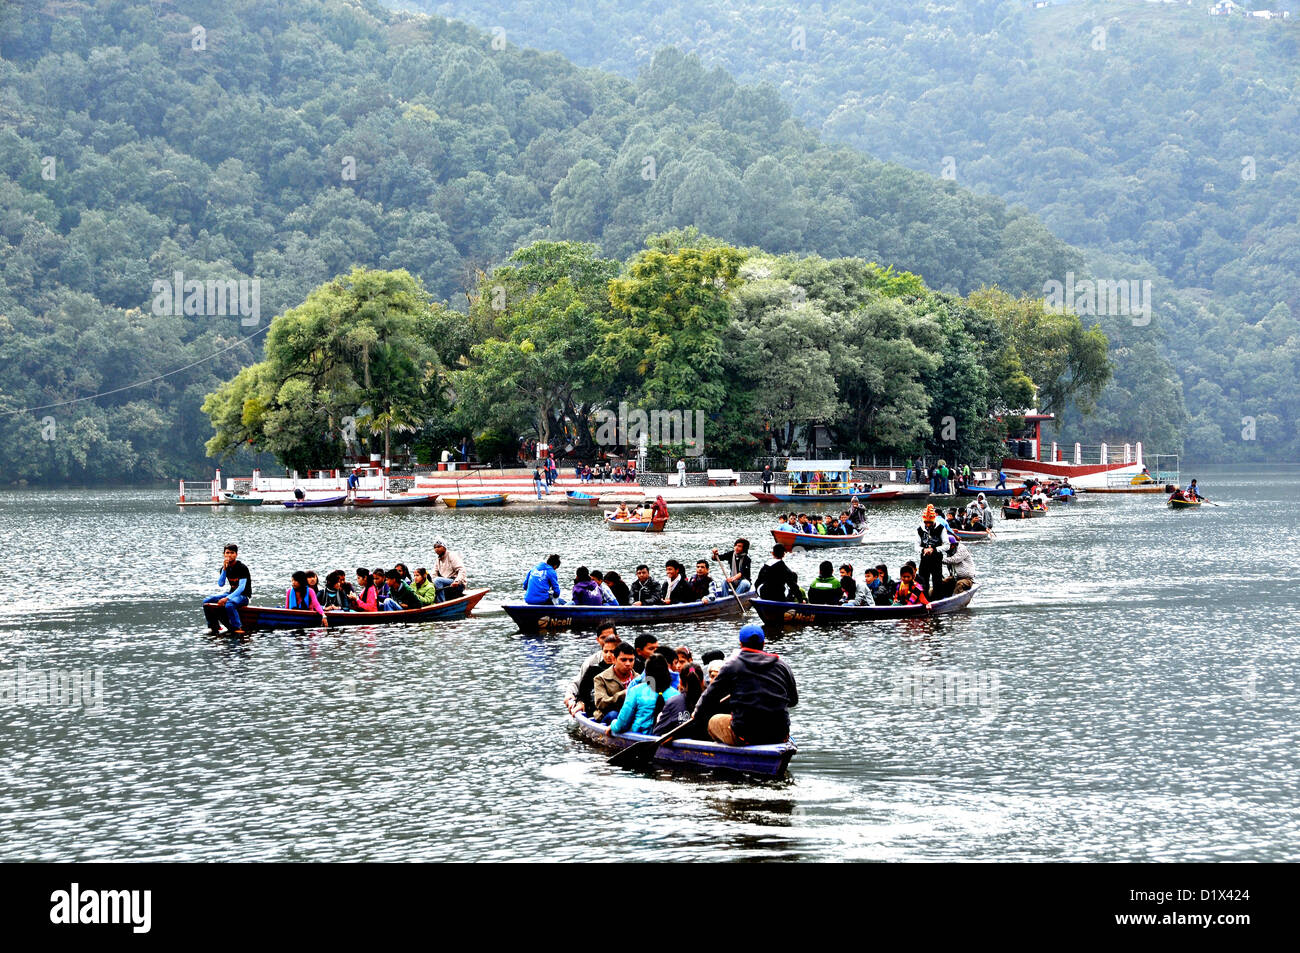 boating on Phewa lake Pokhara Nepal - Stock Image